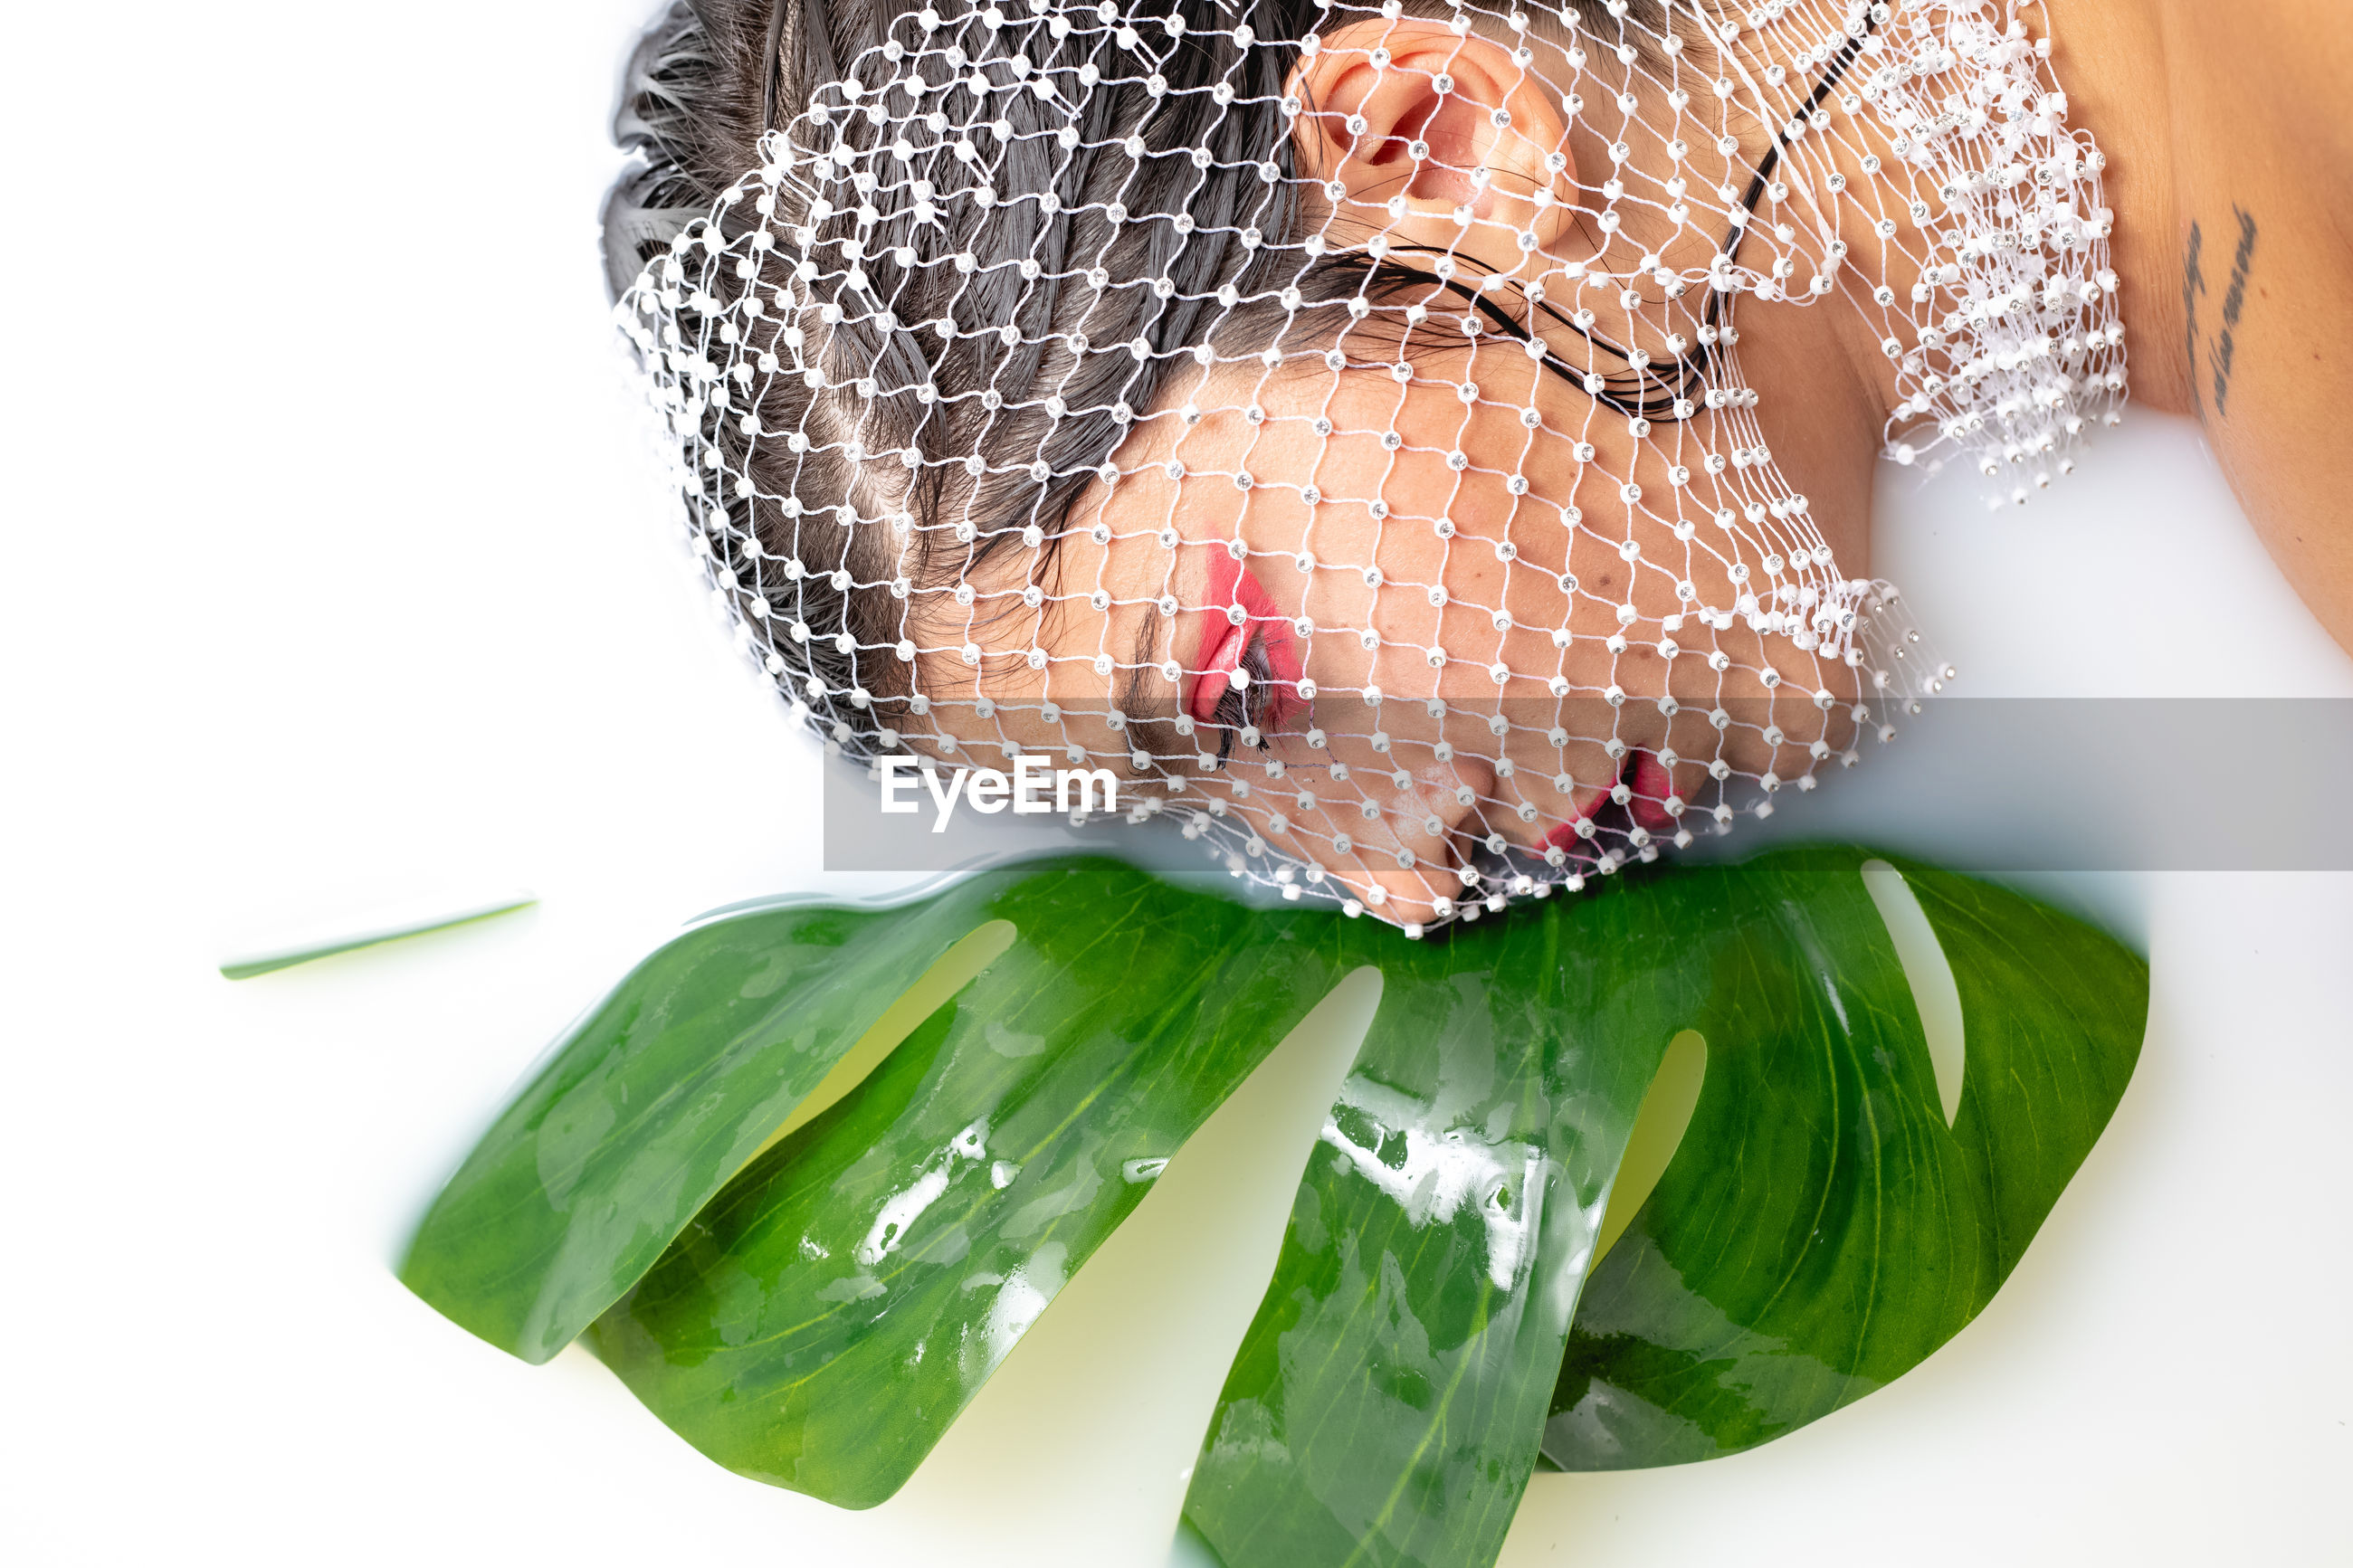 Close-up of thoughtful young woman with face covered by net taking milk bath